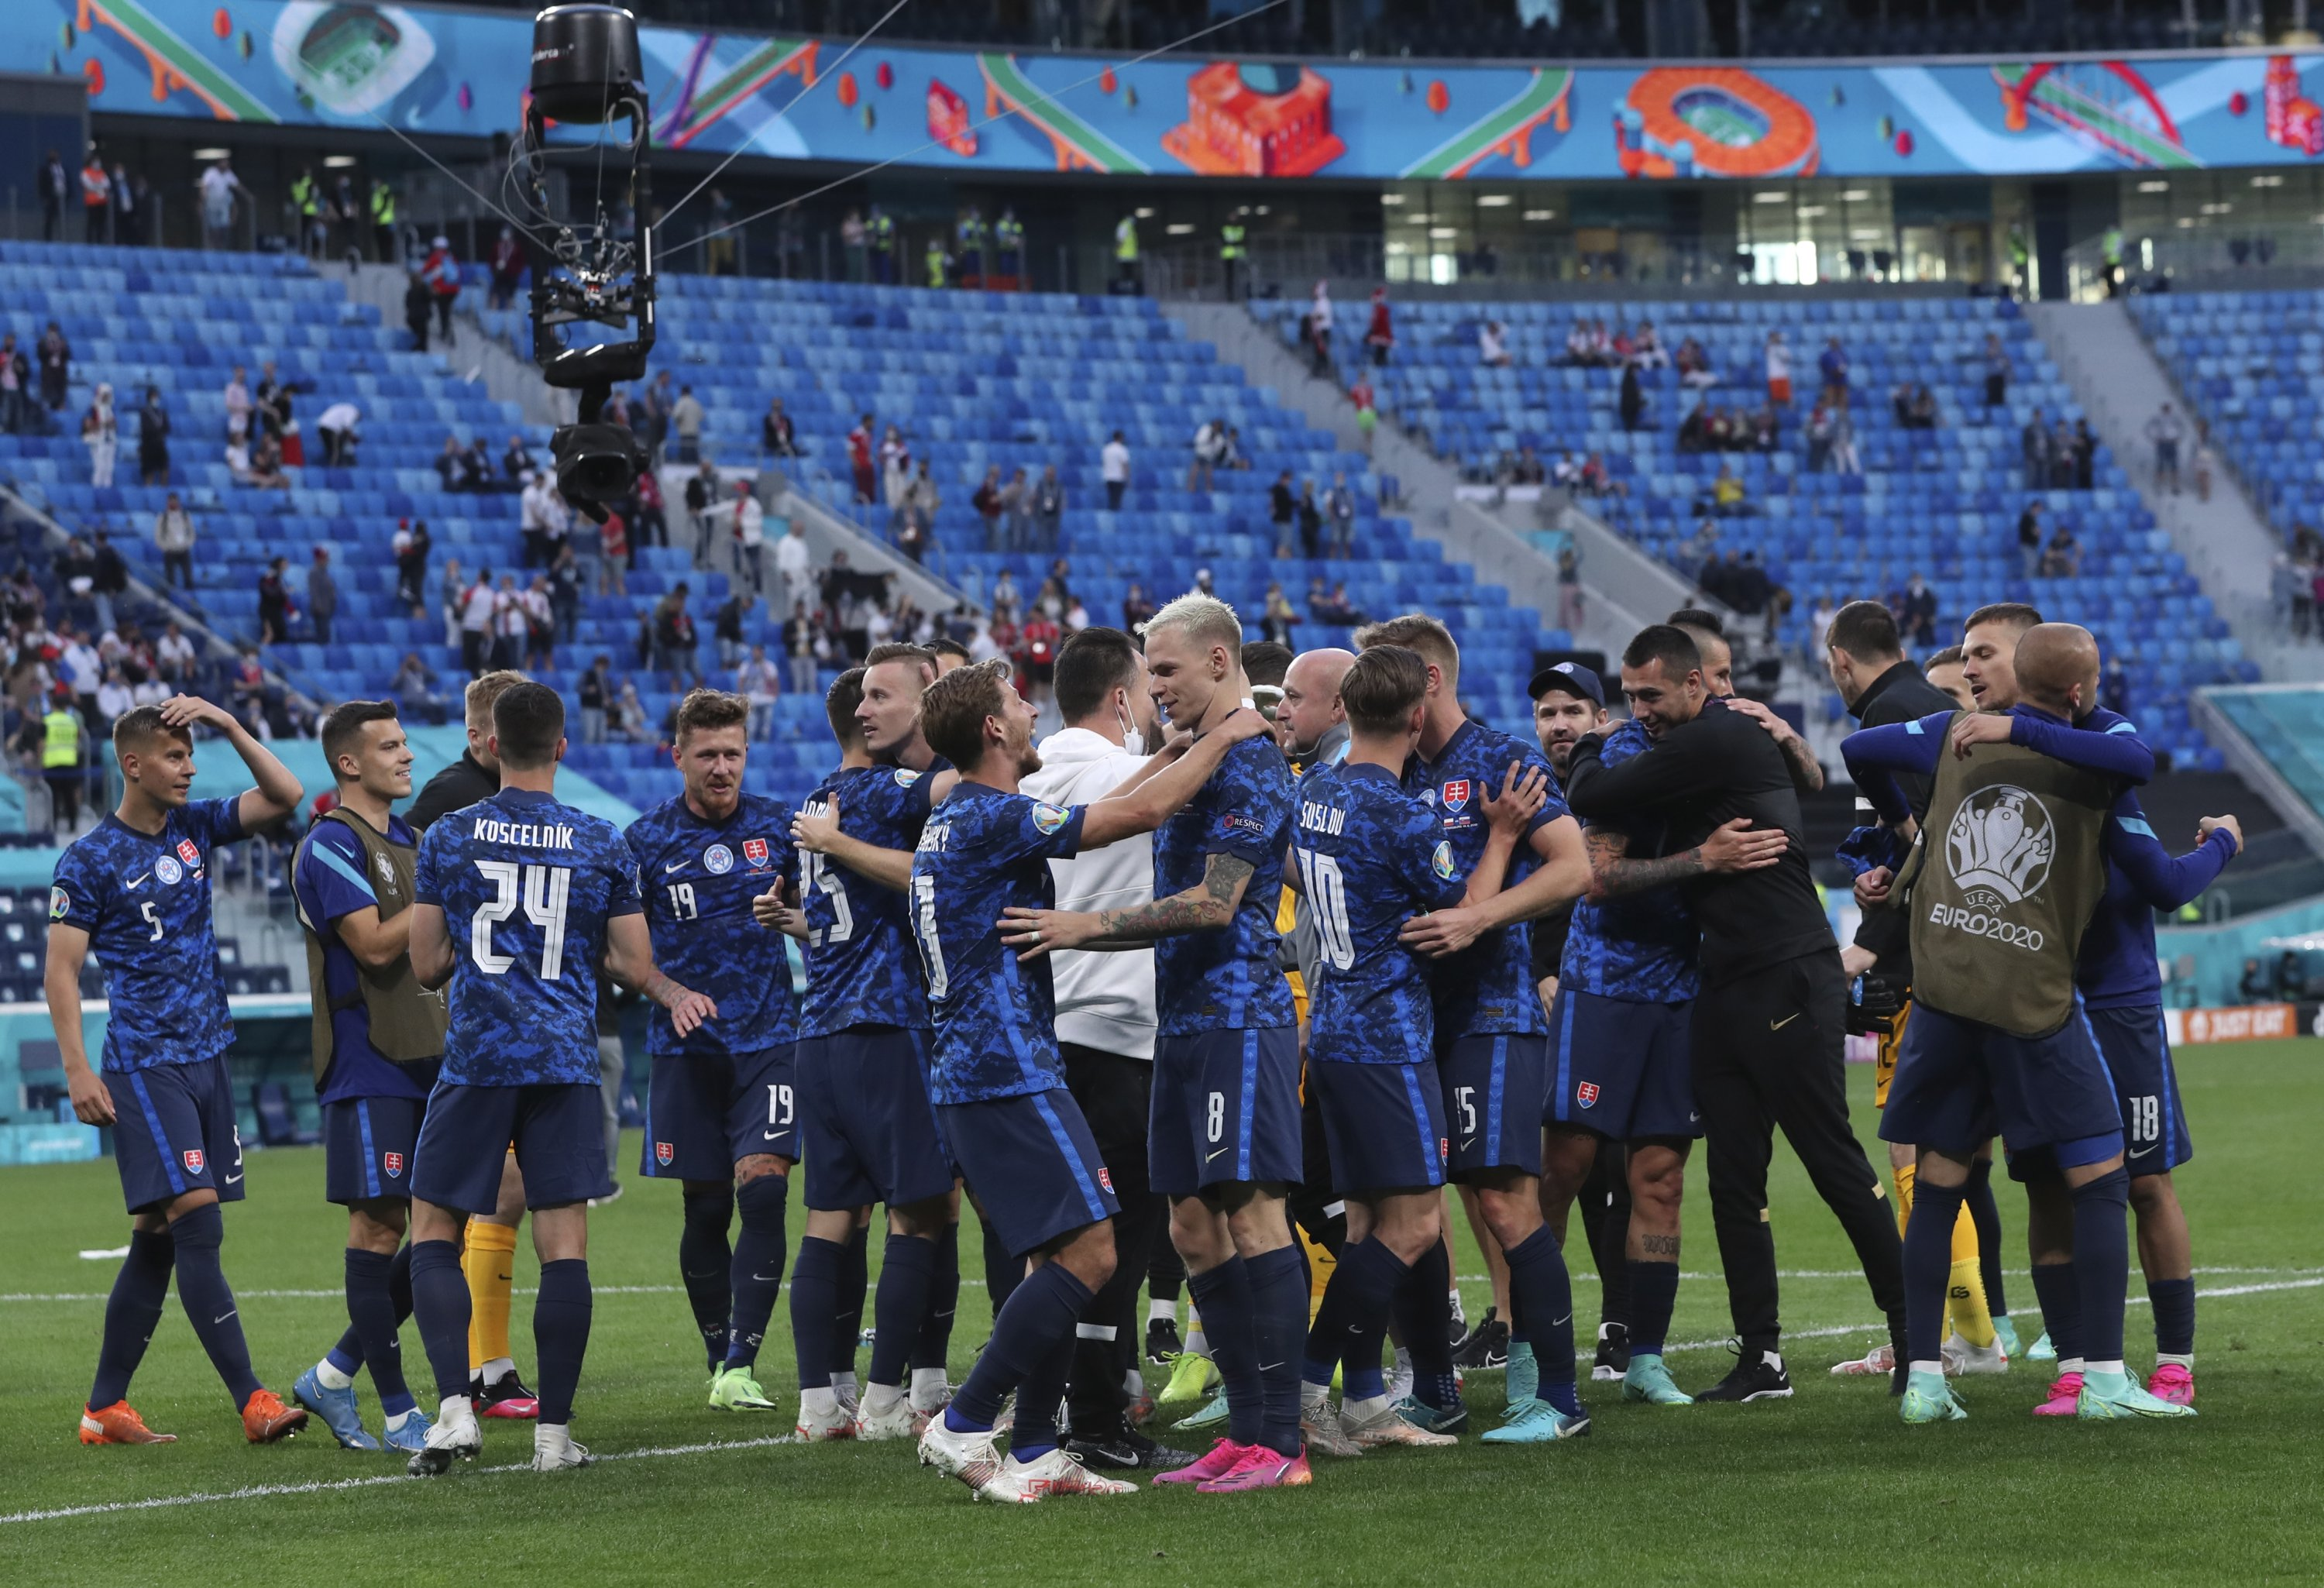 Slovakian players celebrate at the end of the UEFA Euro 2020 Group E match against Poland at Gazprom Arena Stadium in St. Petersburg, Russia, Monday, June 14, 2021. (Evgenya Novozheninavia AP)